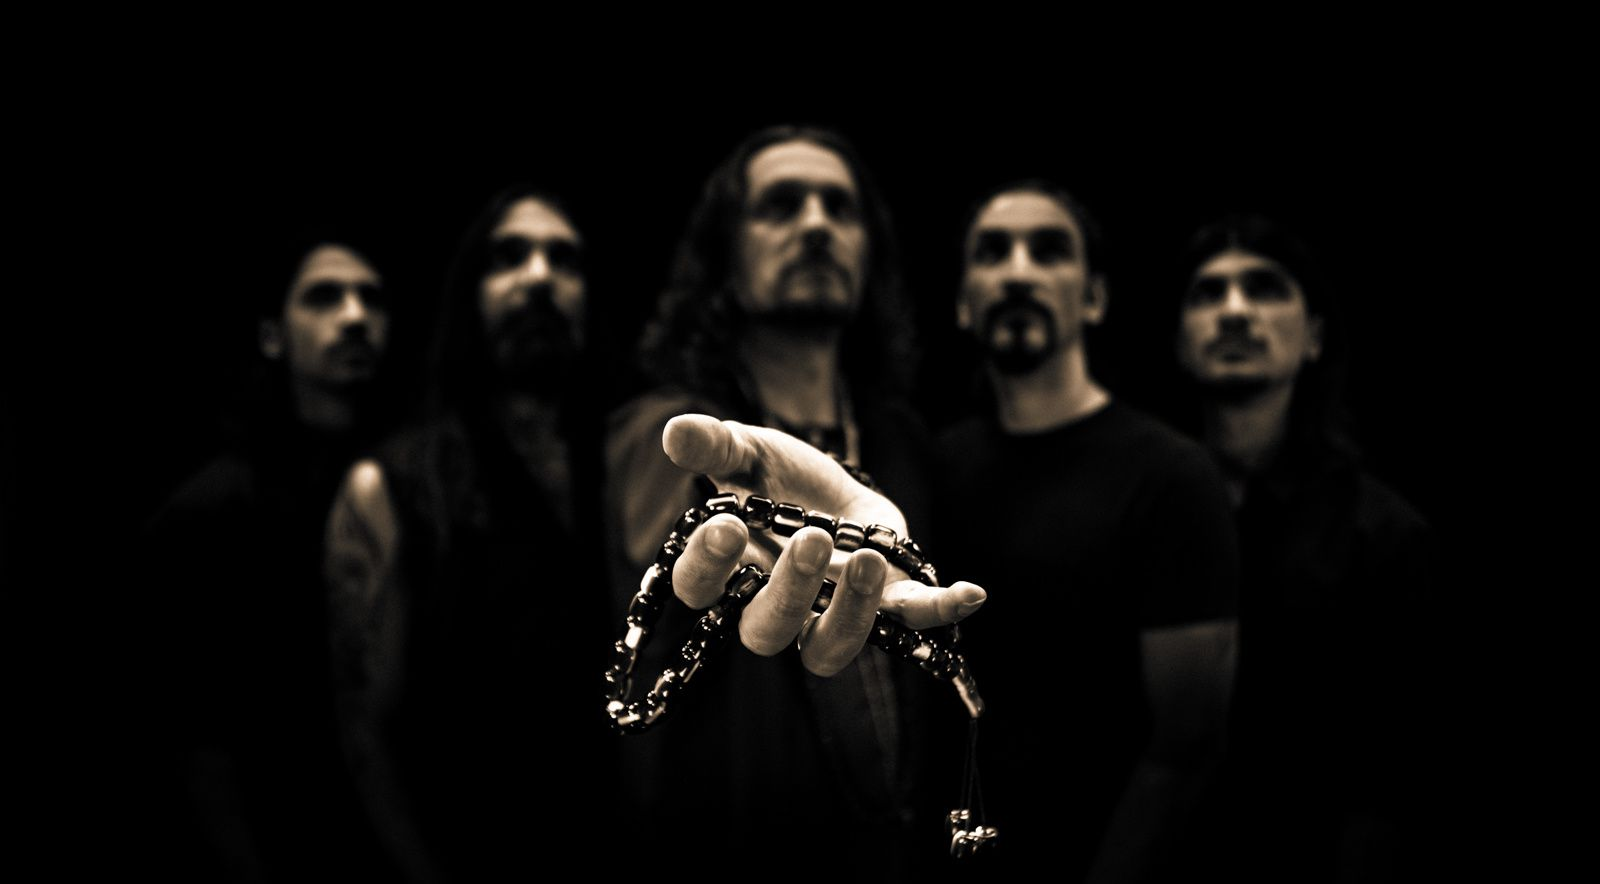 Le groupe Orphaned Land au complet